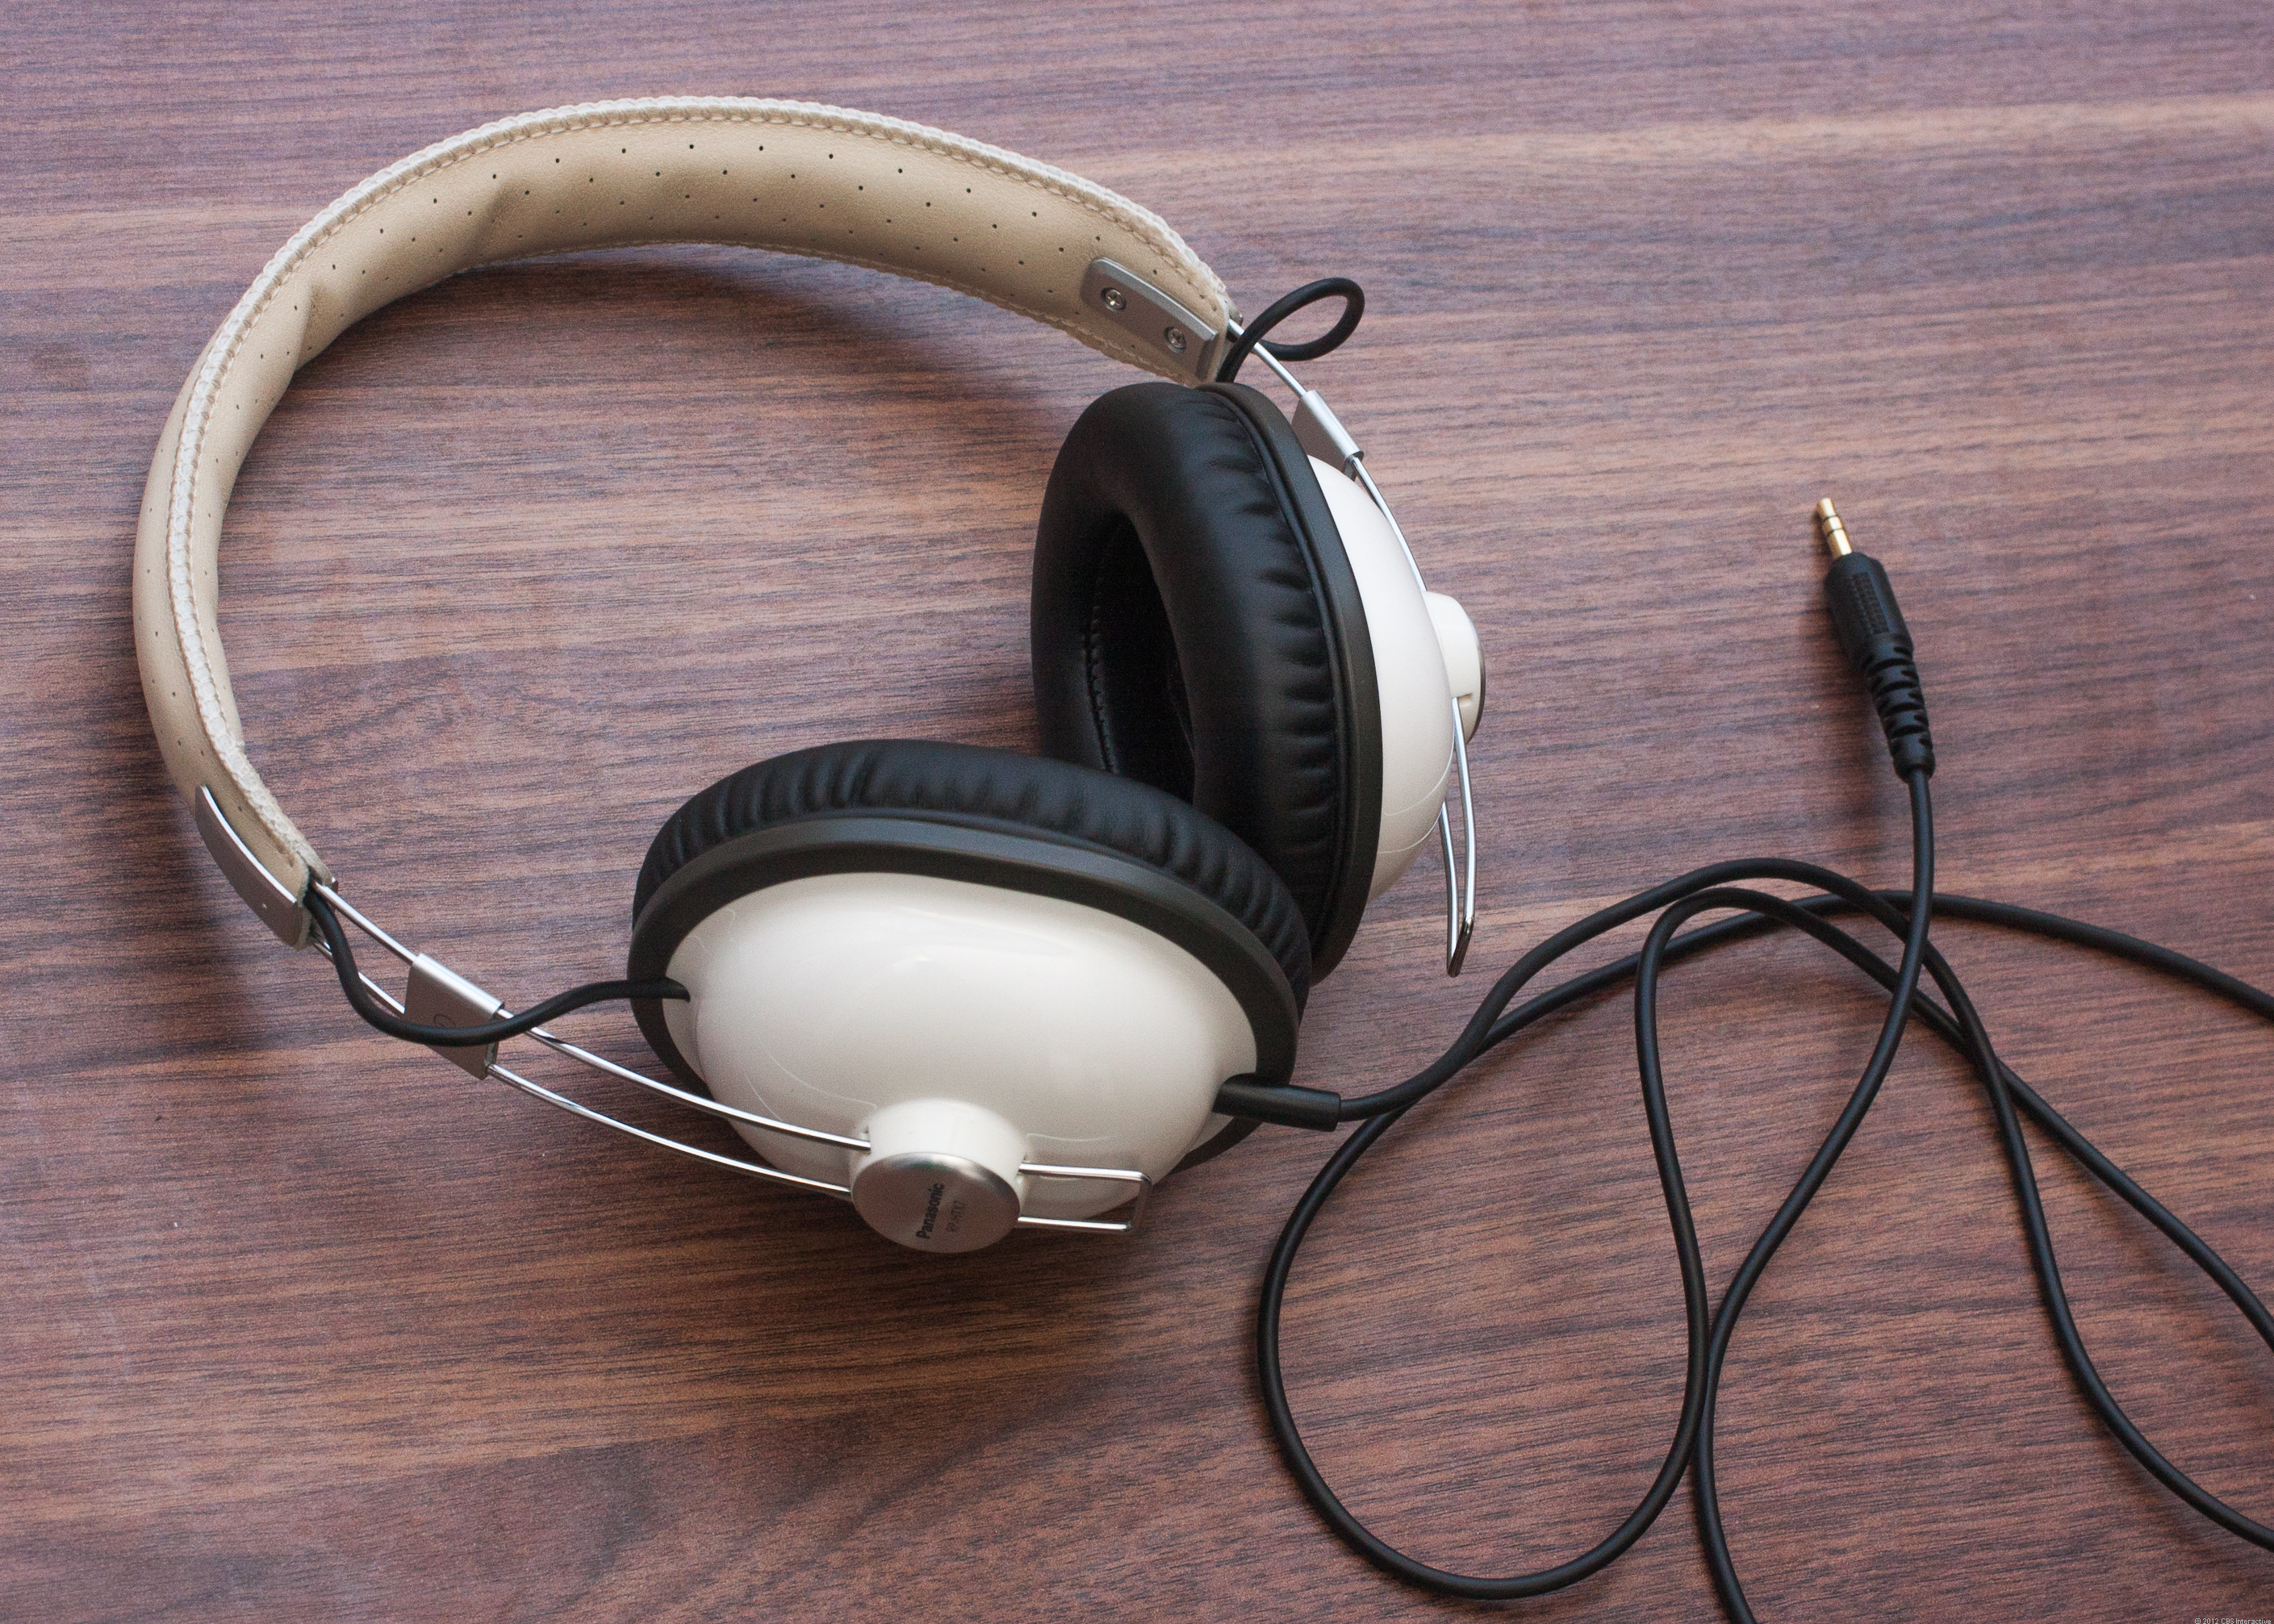 Panasonic_Headphones_33397148_06.jpg